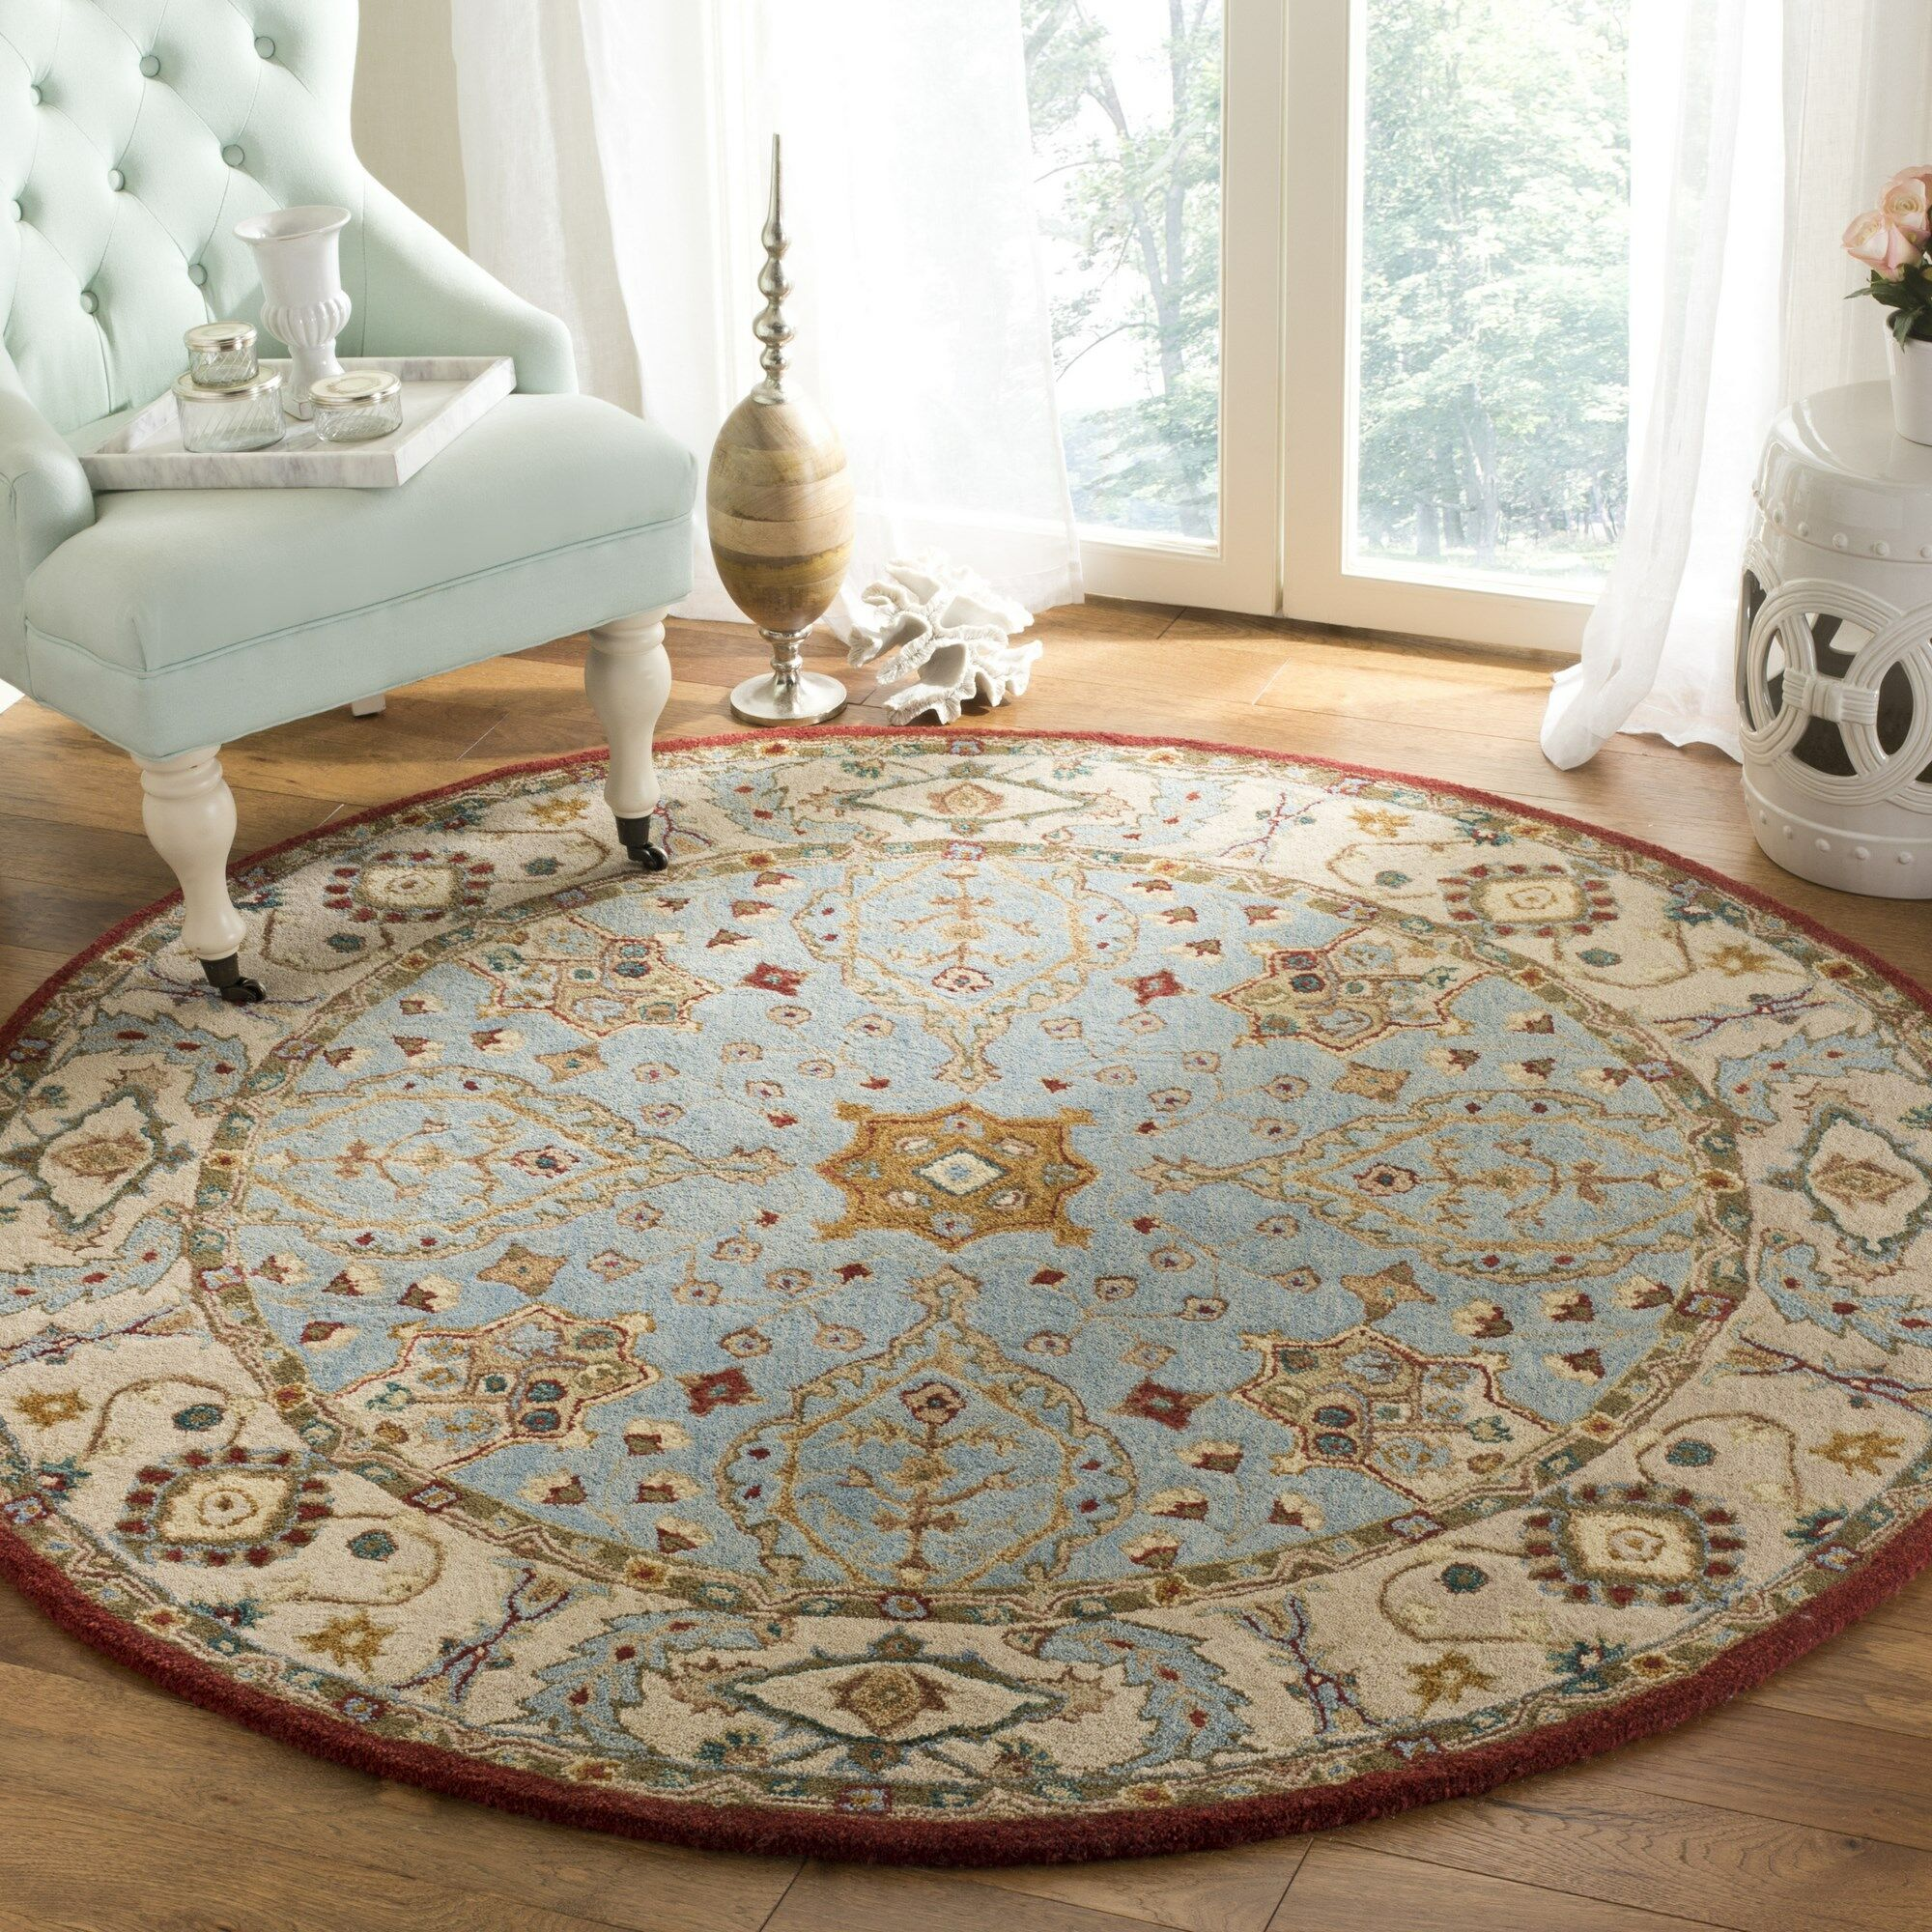 Barr Hand-Tufted Blue Area Rug Rug Size: Round 6'